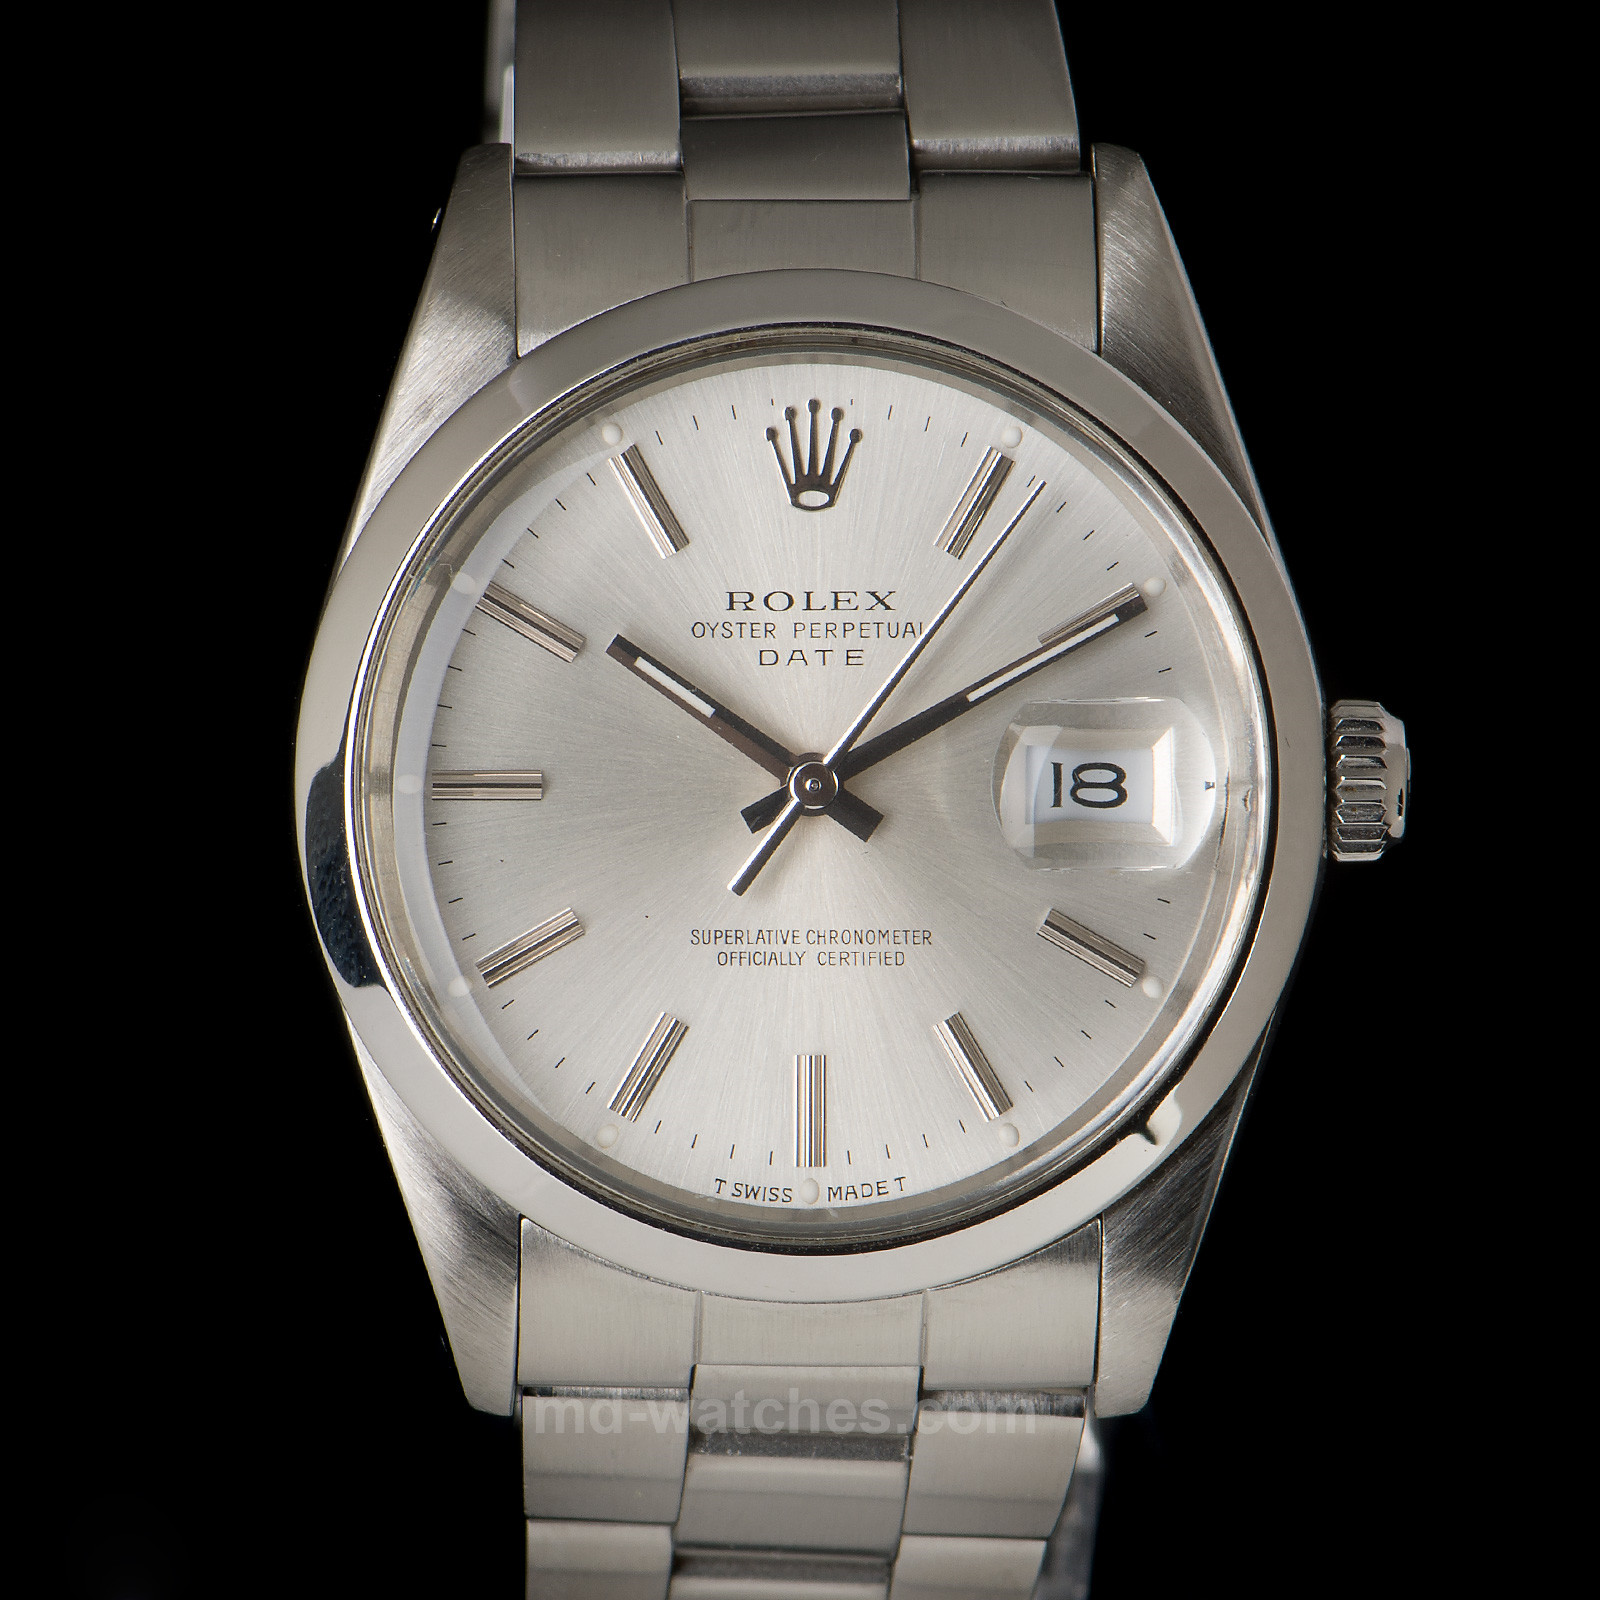 Rolex Oyster Perpetual Date Ref.: 15000 - 34mm - MD Watches